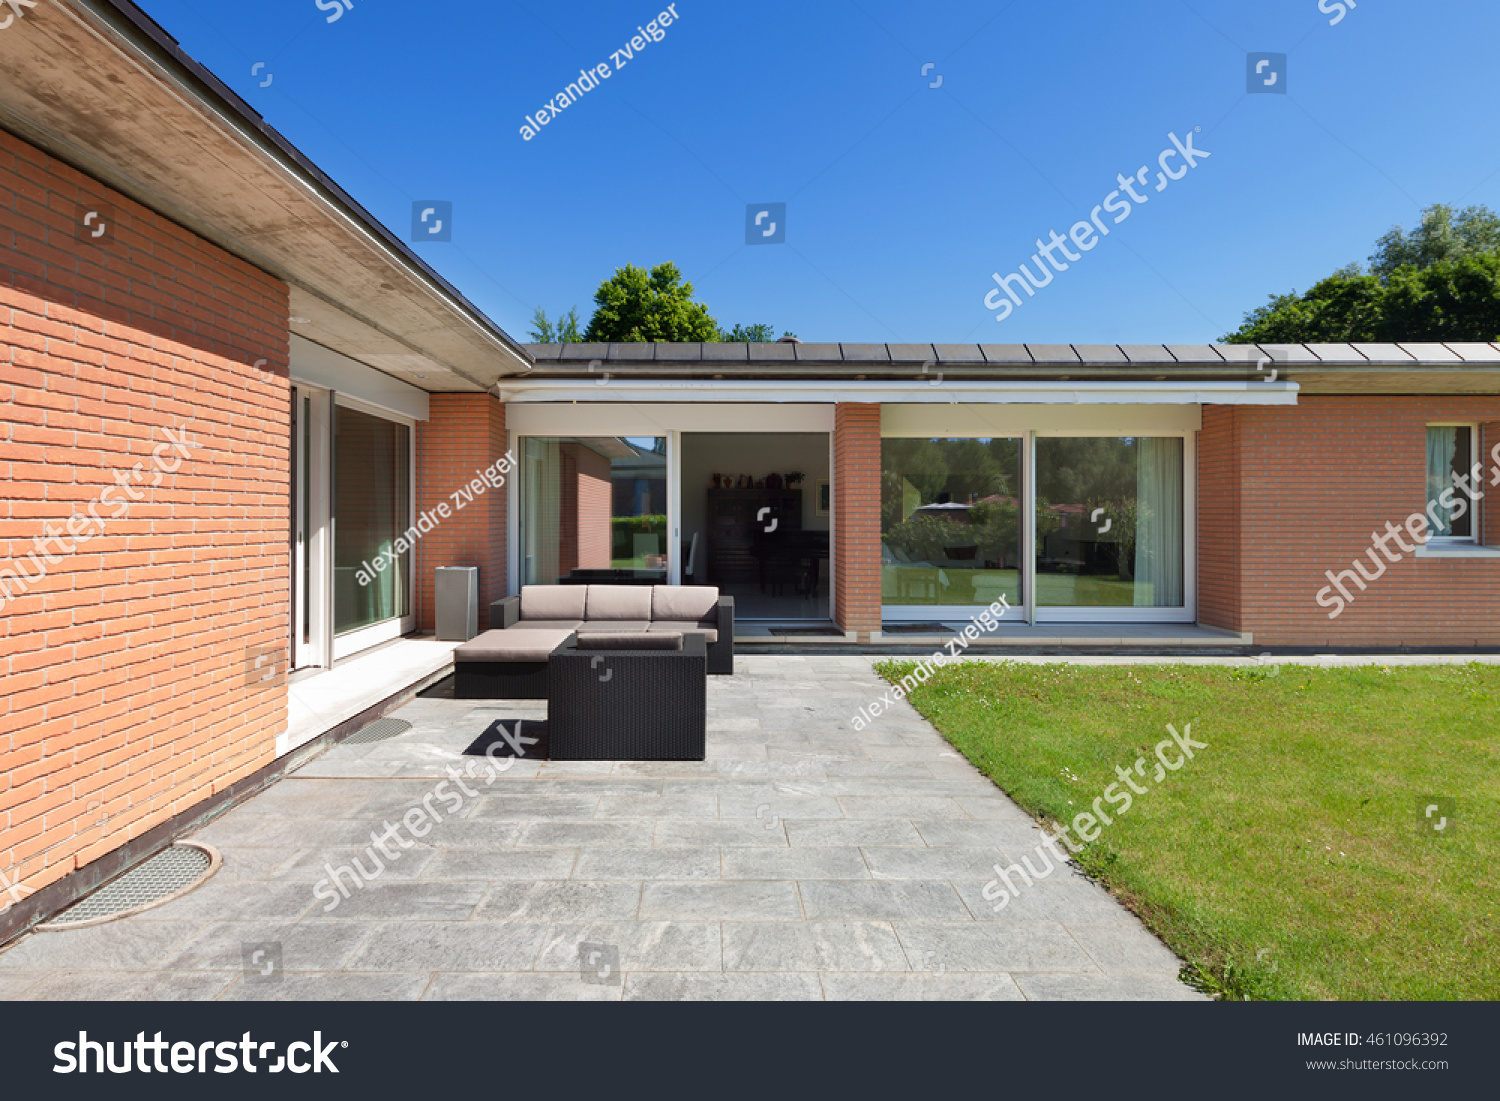 architecture veranda brick house outdoors stock photo 461096392 shutterstock. Black Bedroom Furniture Sets. Home Design Ideas